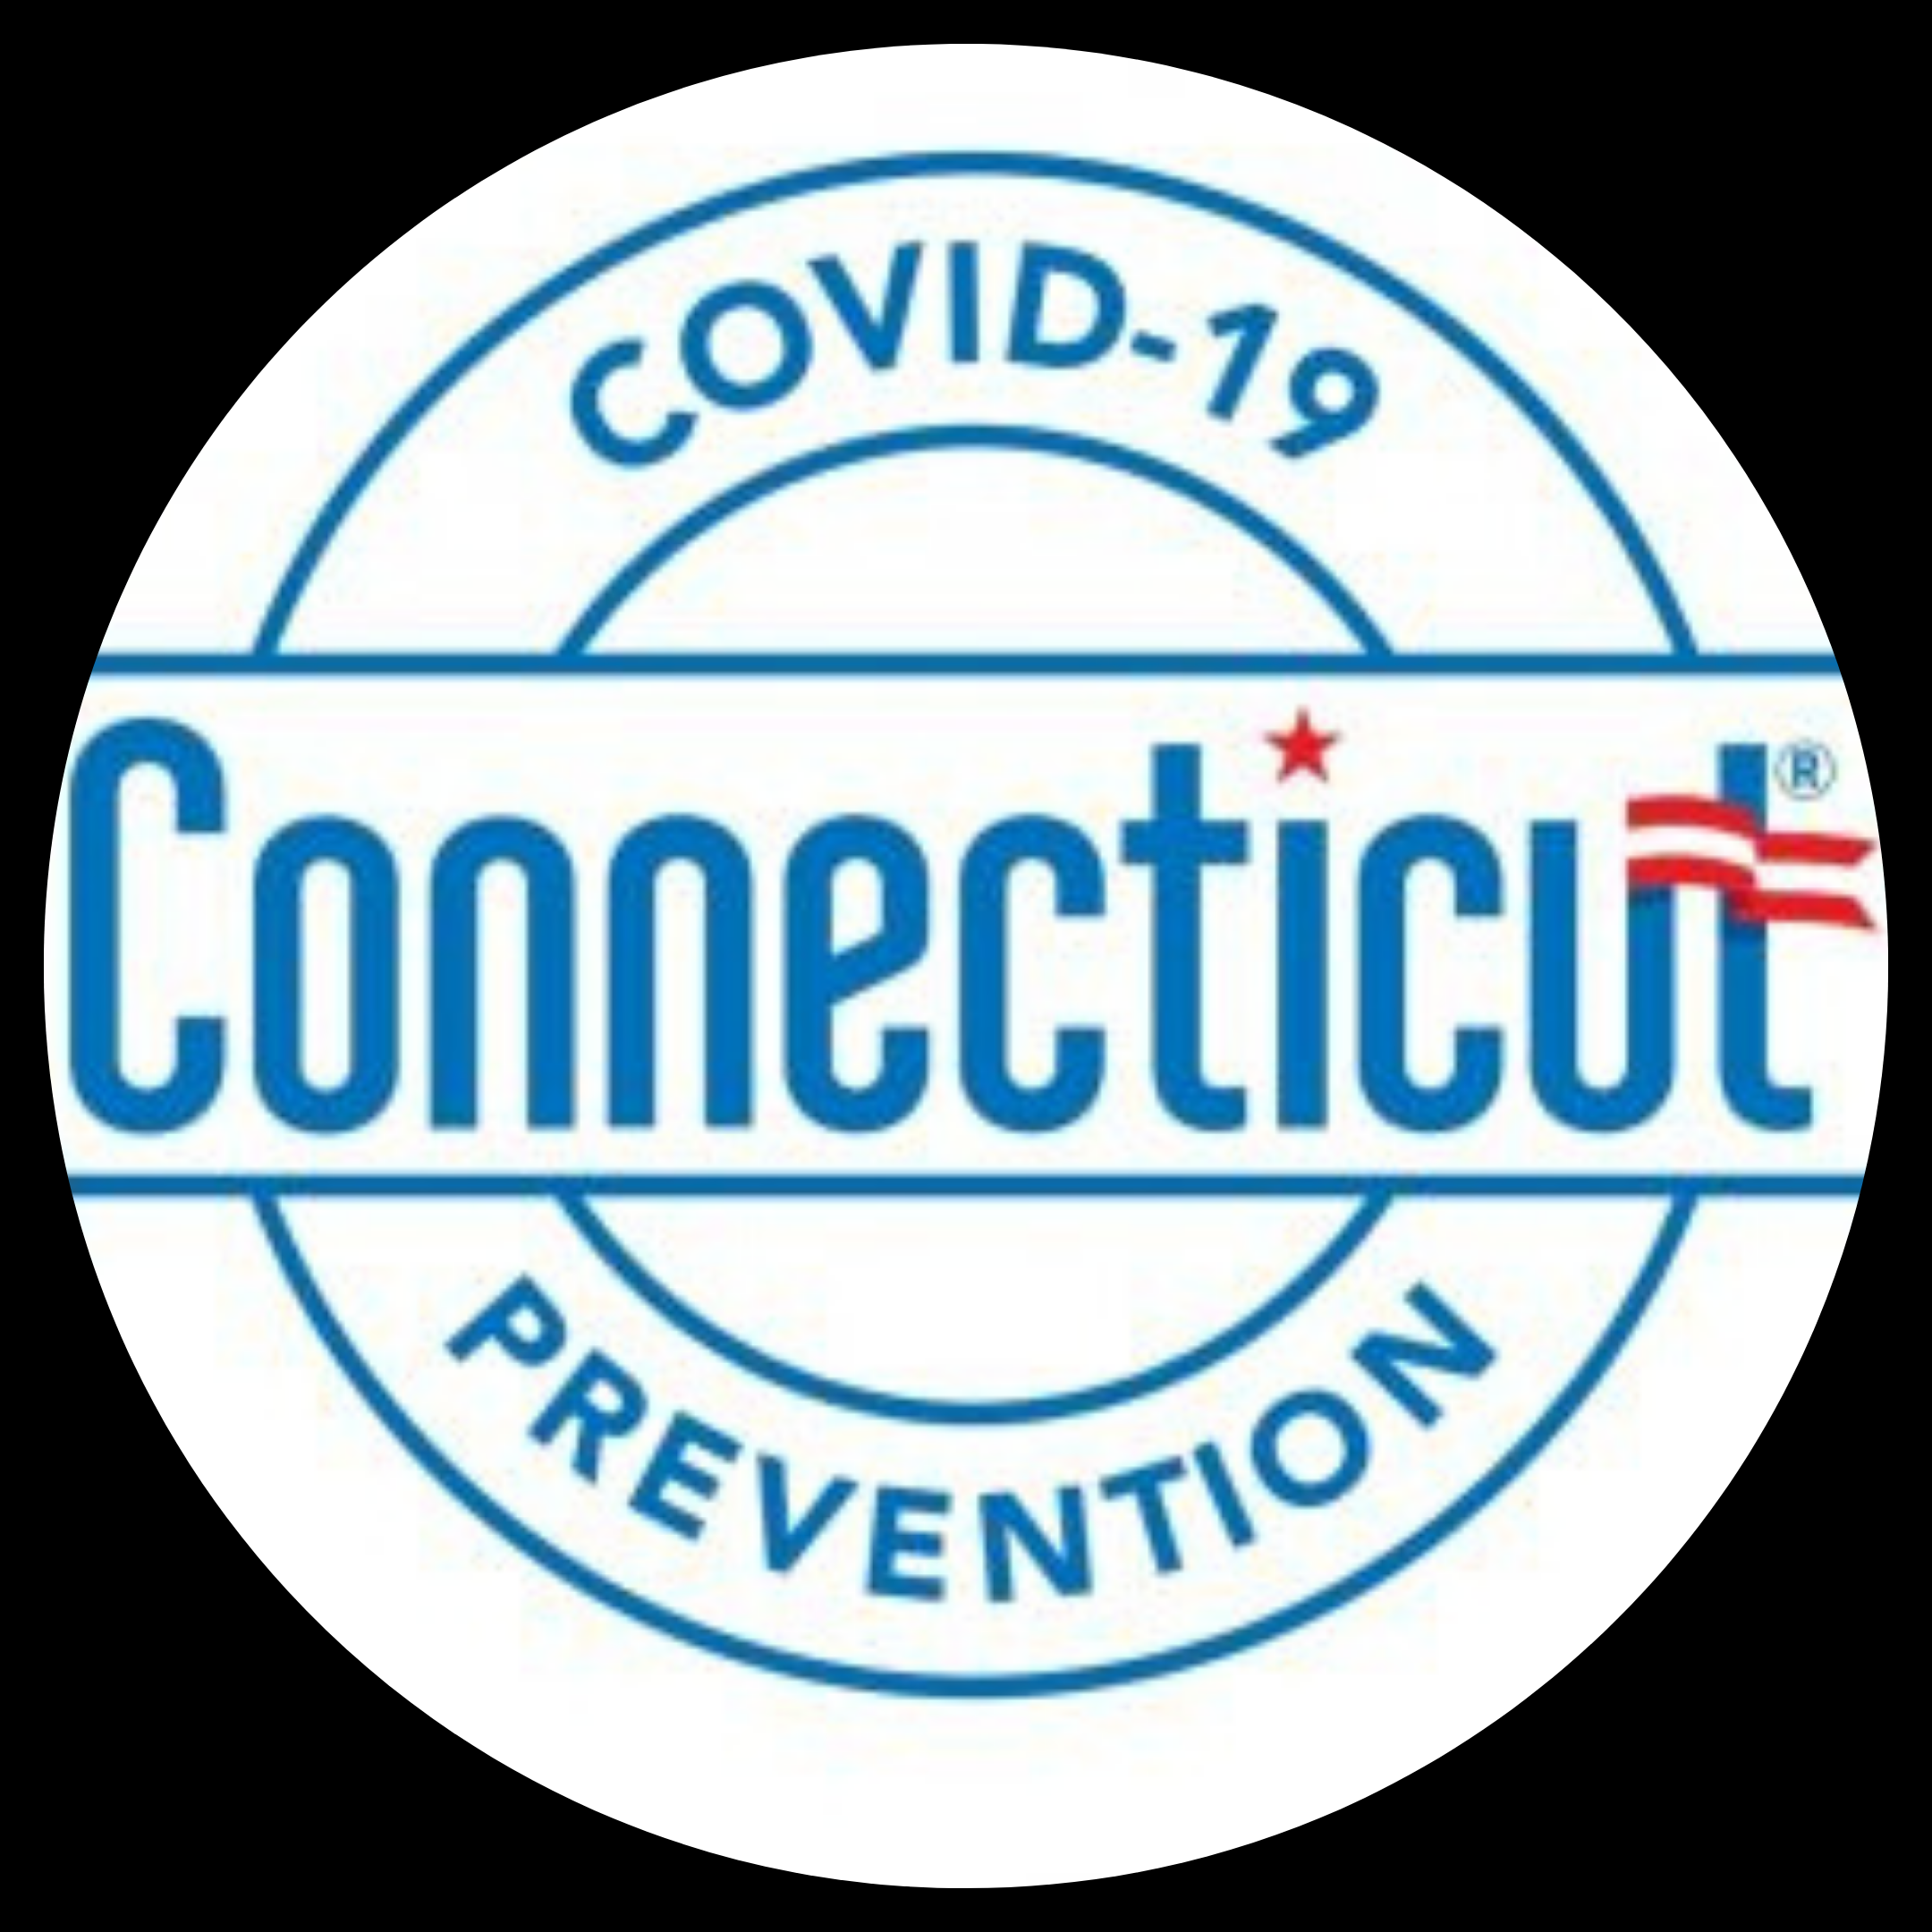 covid-19 badge for Connecticut